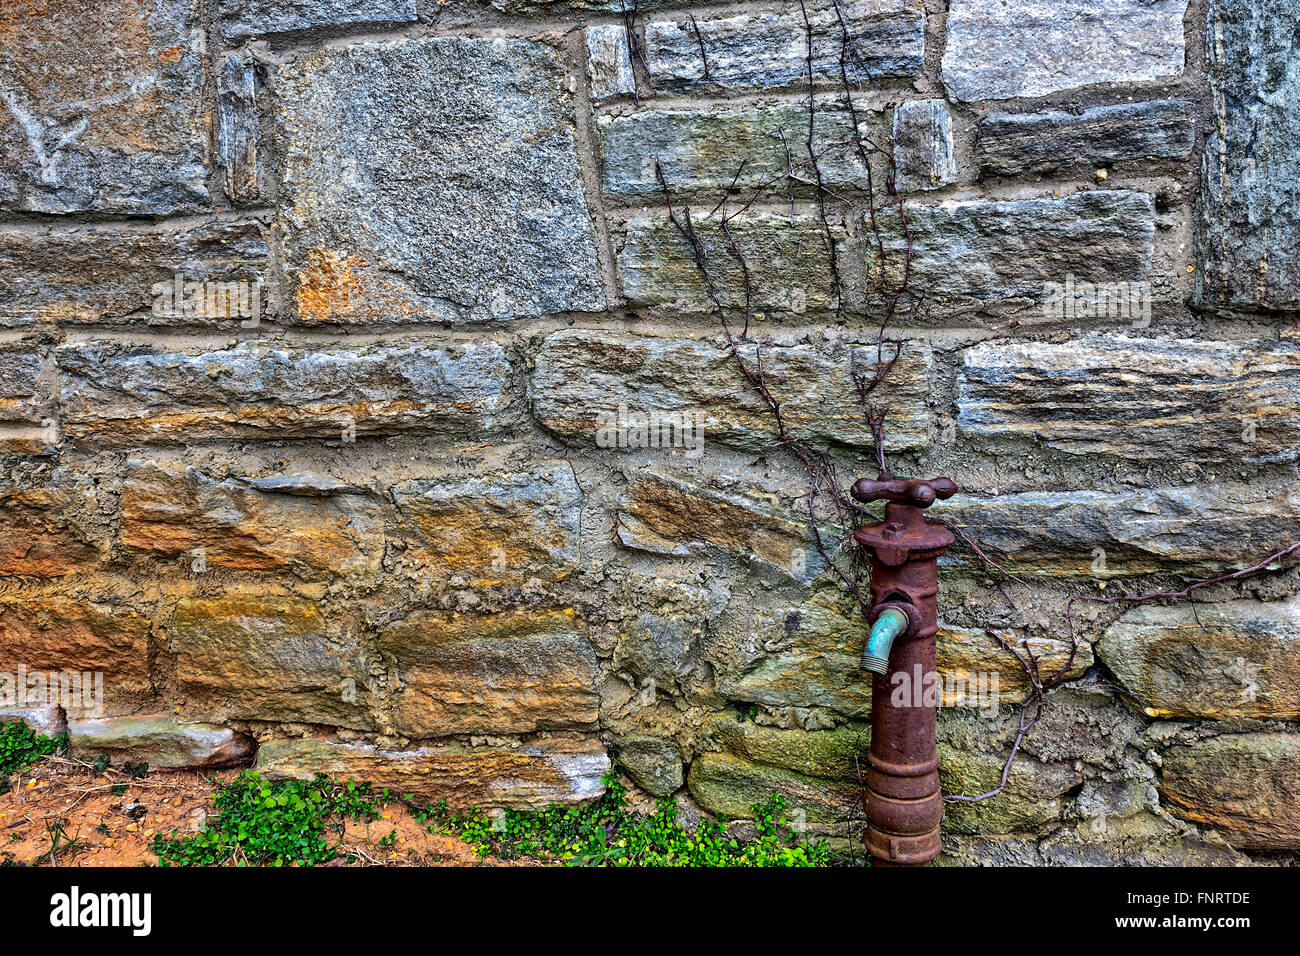 Old Rusty Water Faucet on side of building Stock Photo: 99483706 - Alamy